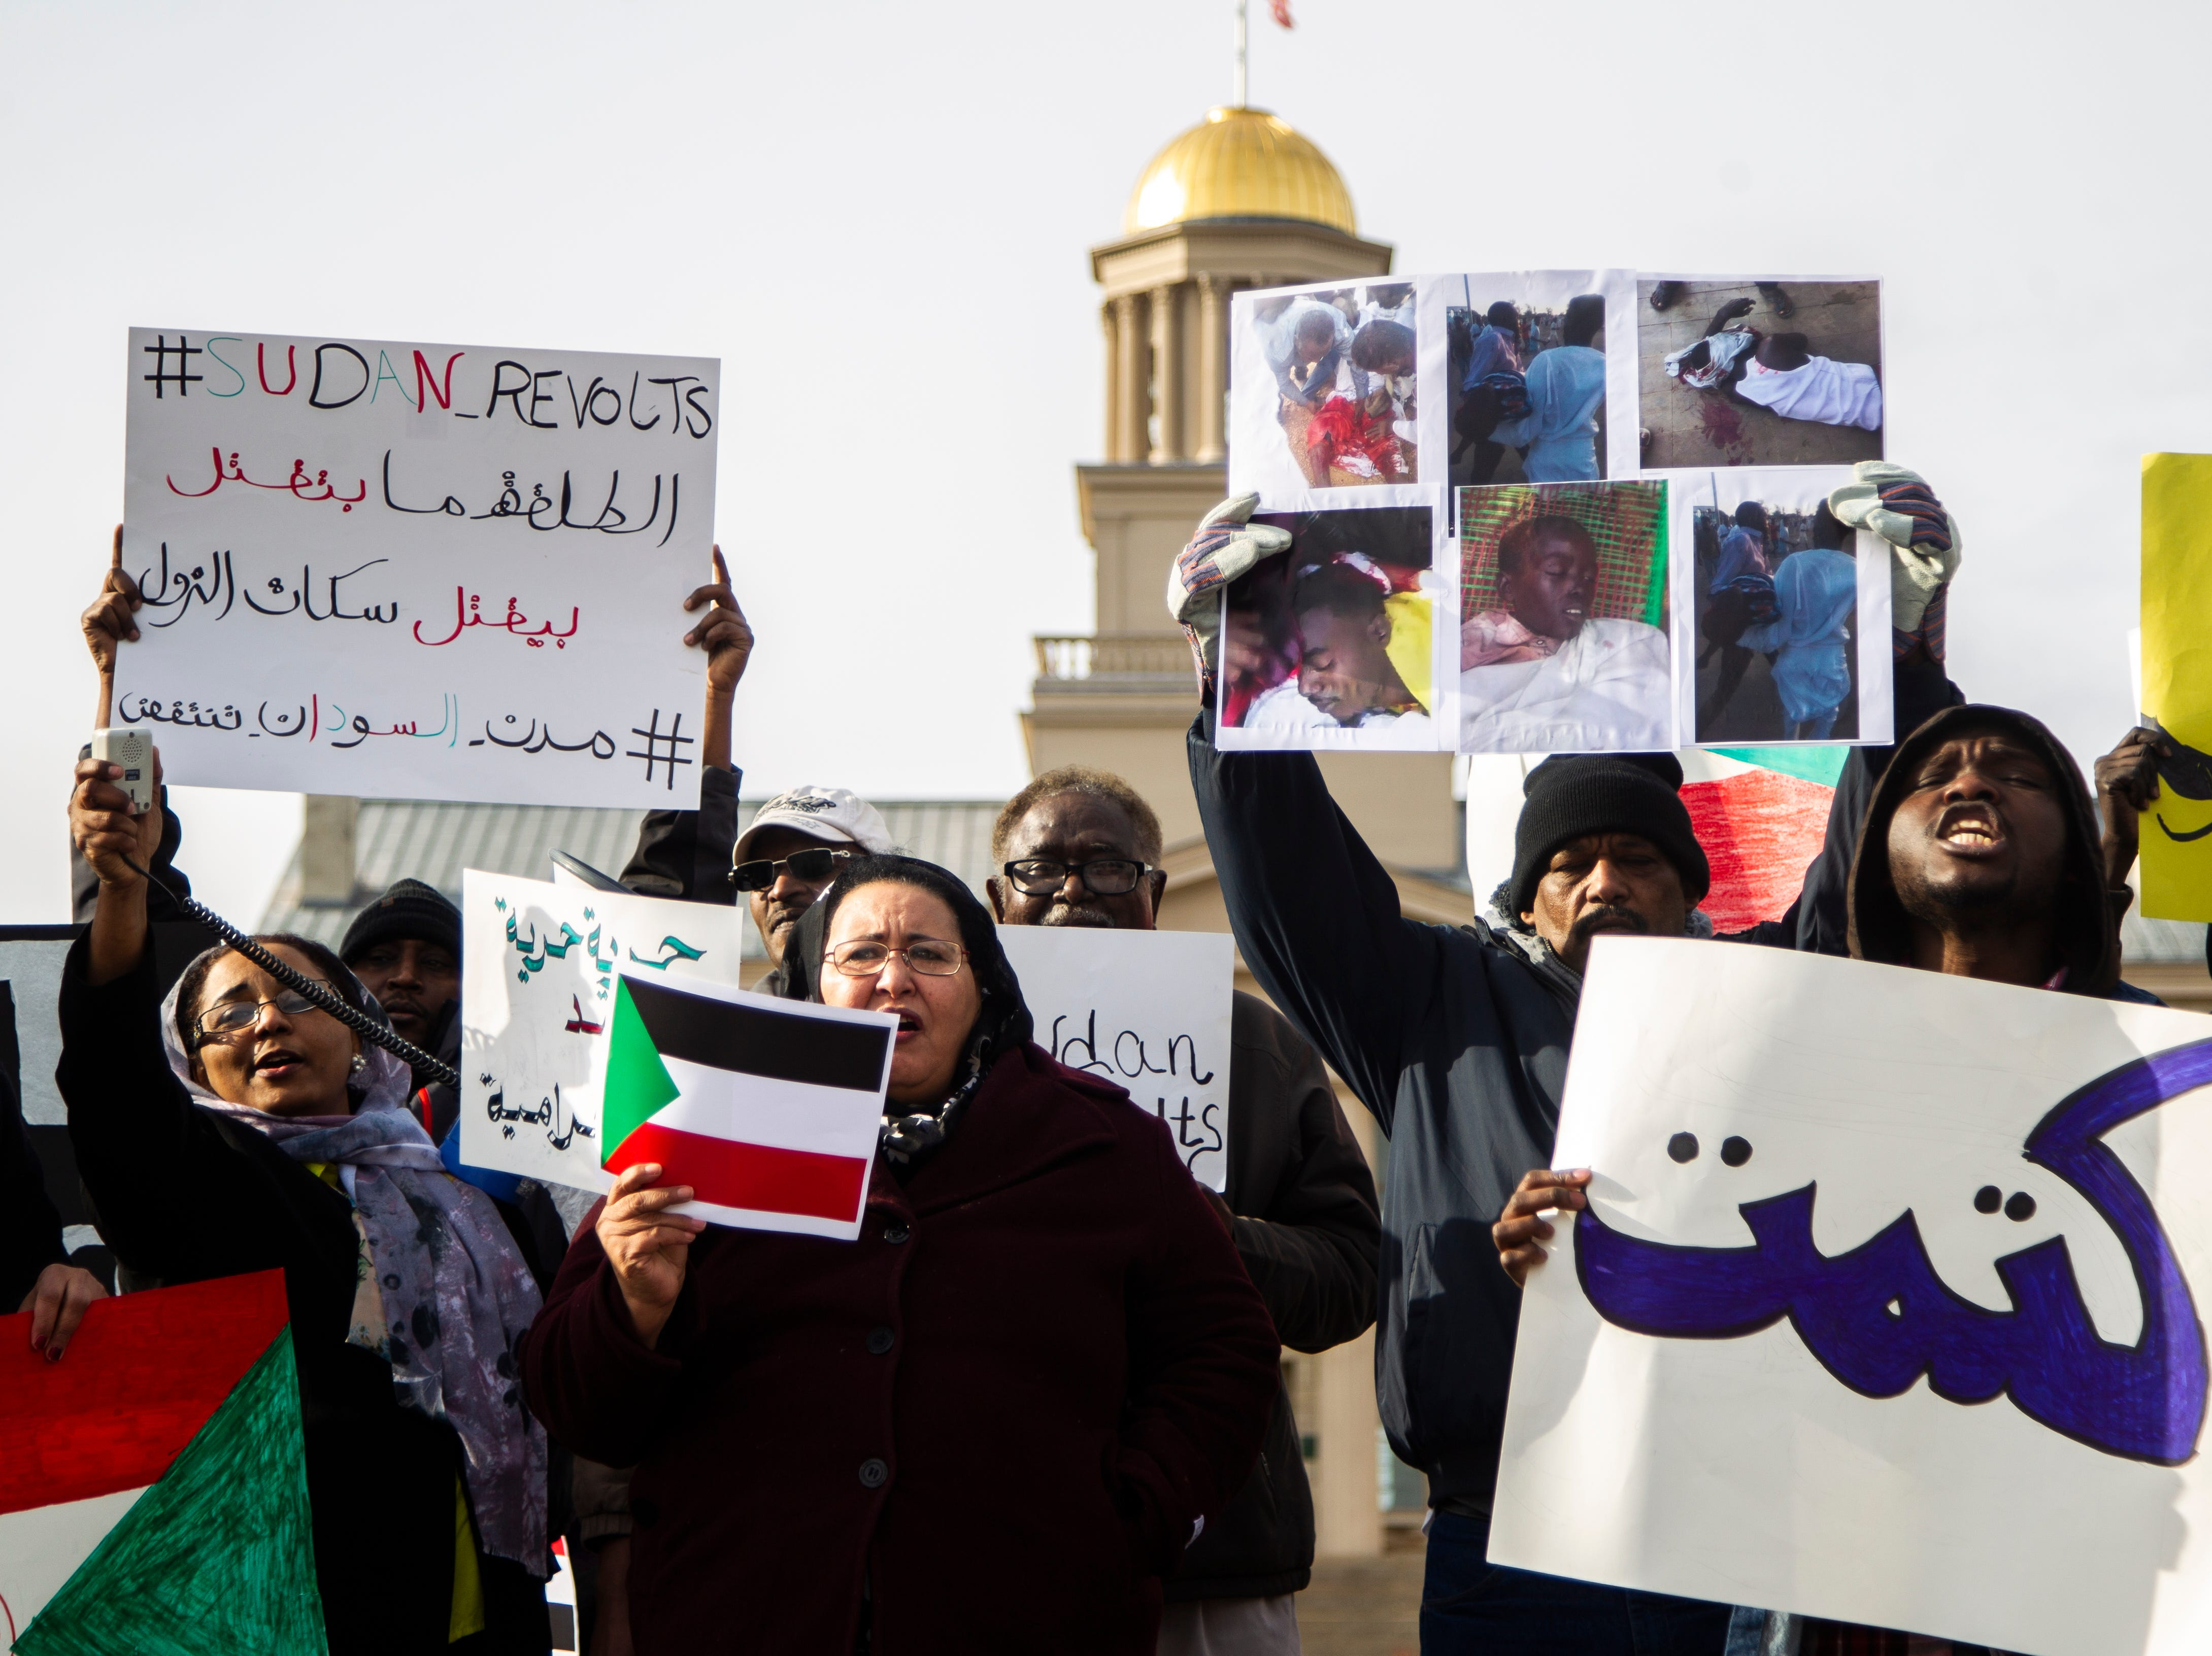 Sudanese refugee Omer Idres, right, chants with members of the Iowa City community gather during a peaceful protest in opposition to the killings in their home country on Monday, Dec. 24, 2018, along Clinton Street in front of the Old Capitol Building on the Pentacrest in downtown Iowa City. Idres came to the United States five years ago after waiting two years before being selected in a visa lottery.